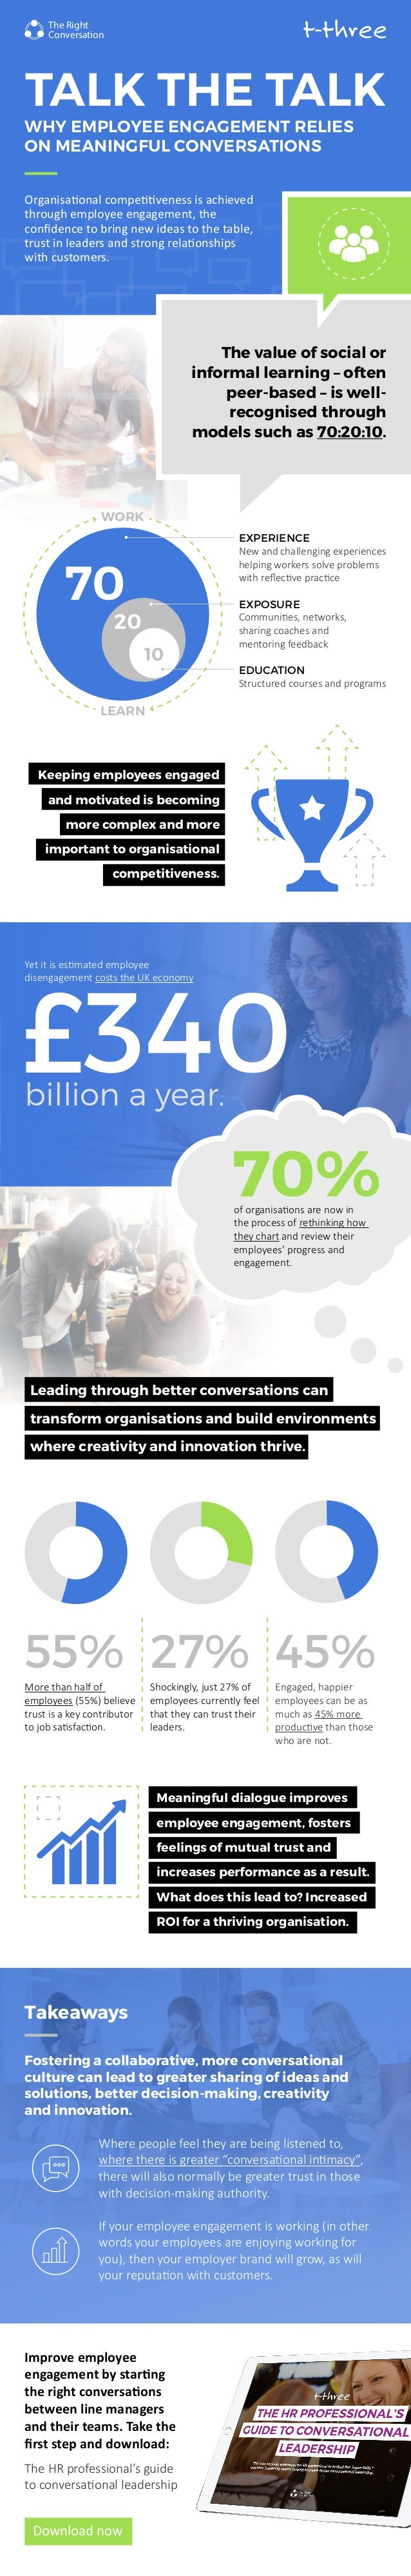 TALK THE TALK WHY EMPLOYEE ENGAGEMENT RELIES ON MEANINGFUL CONVERSATIONS Meaningful dialogue improves employee engagement,...